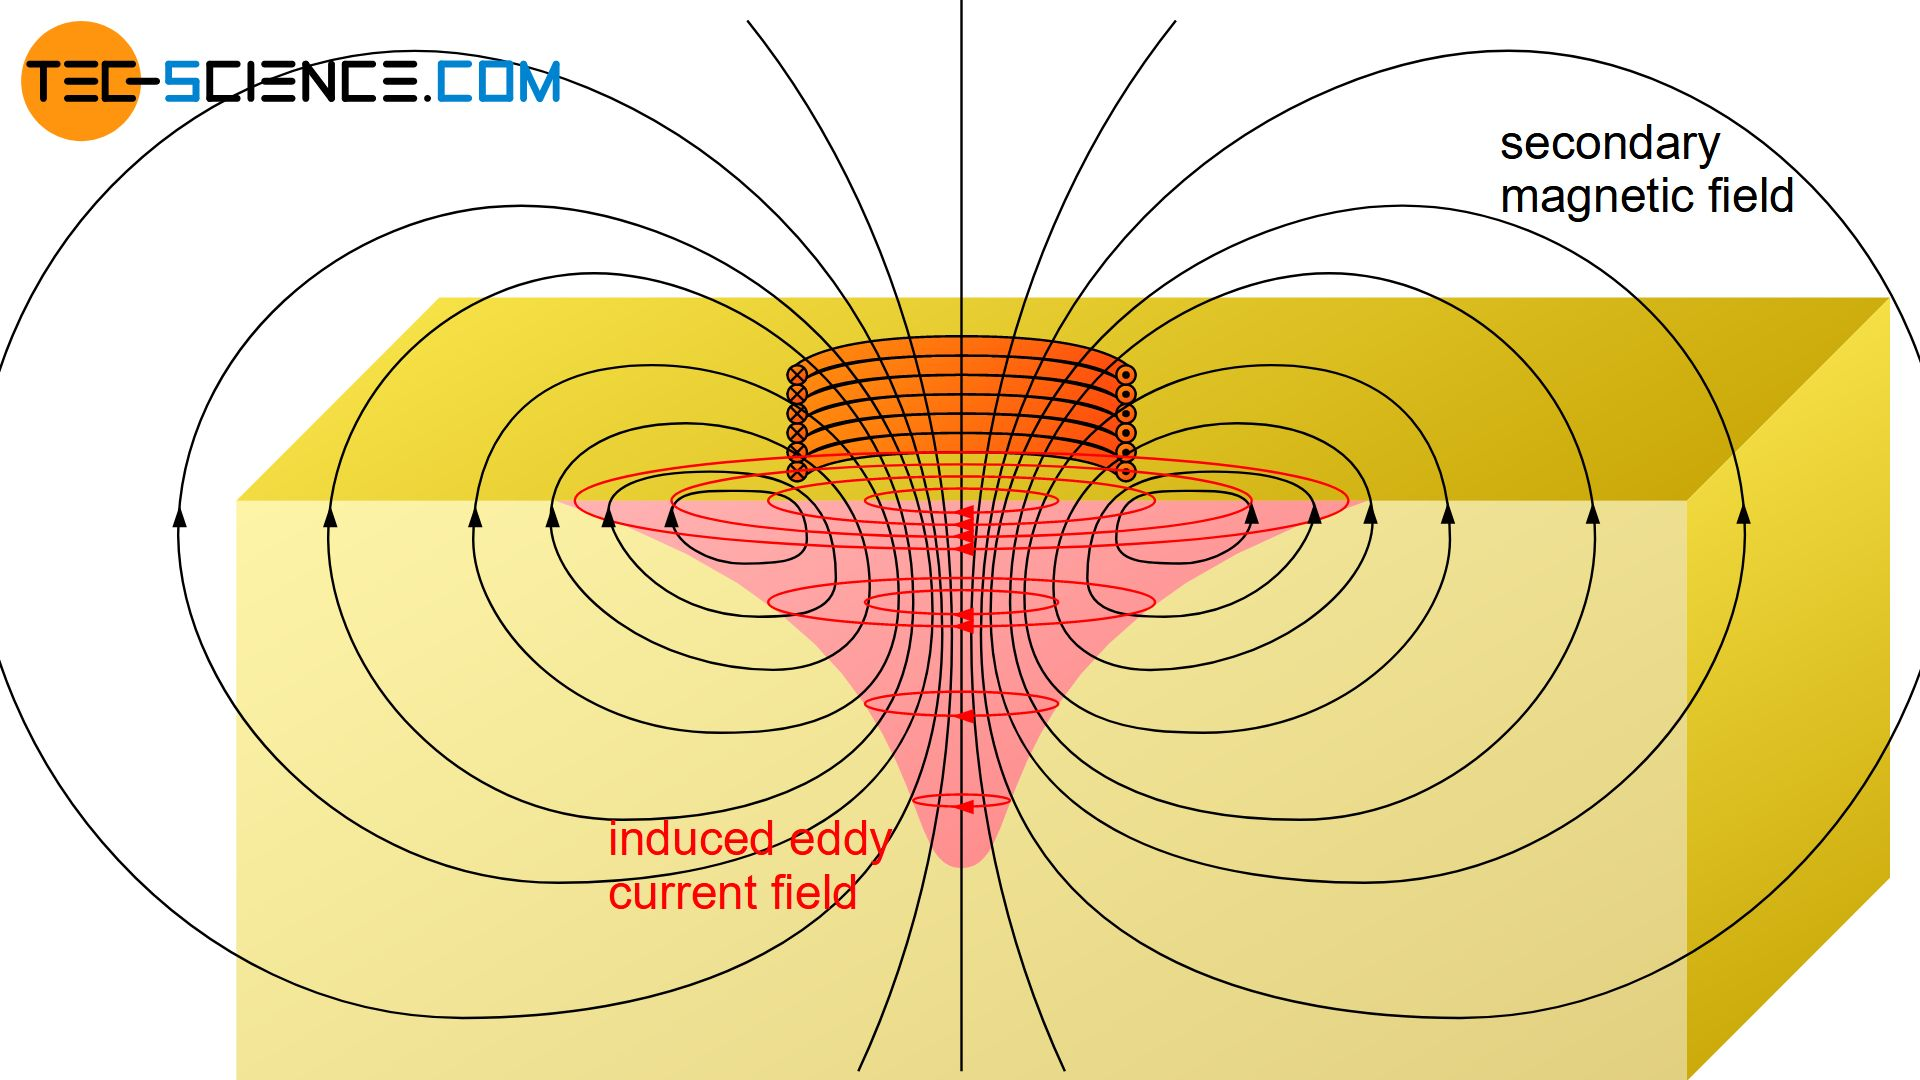 Secondary magnetic field induced by eddy currents